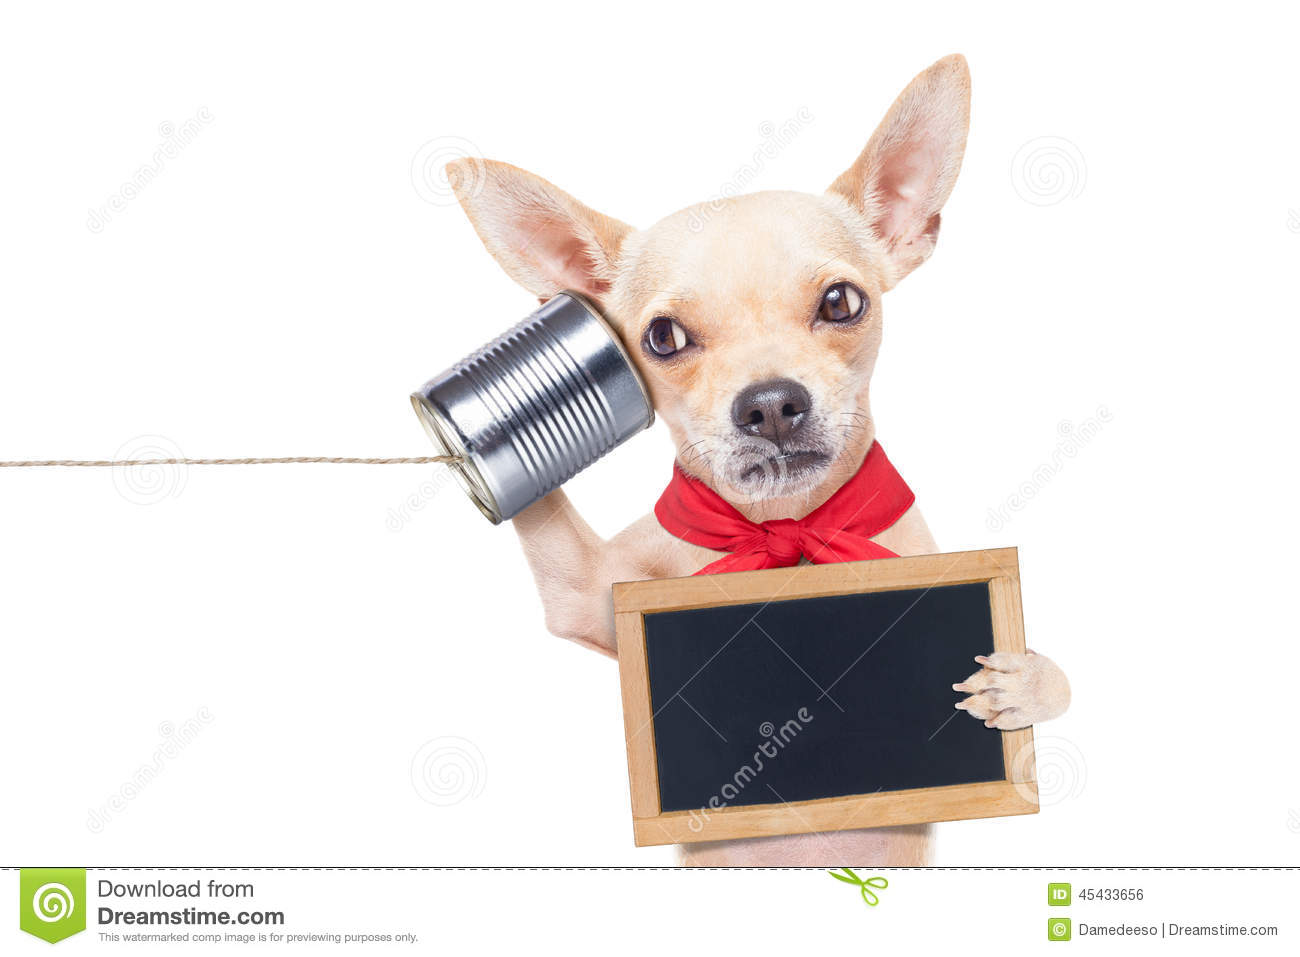 Chihuahua dog talking on the phone surprised, holding a blank